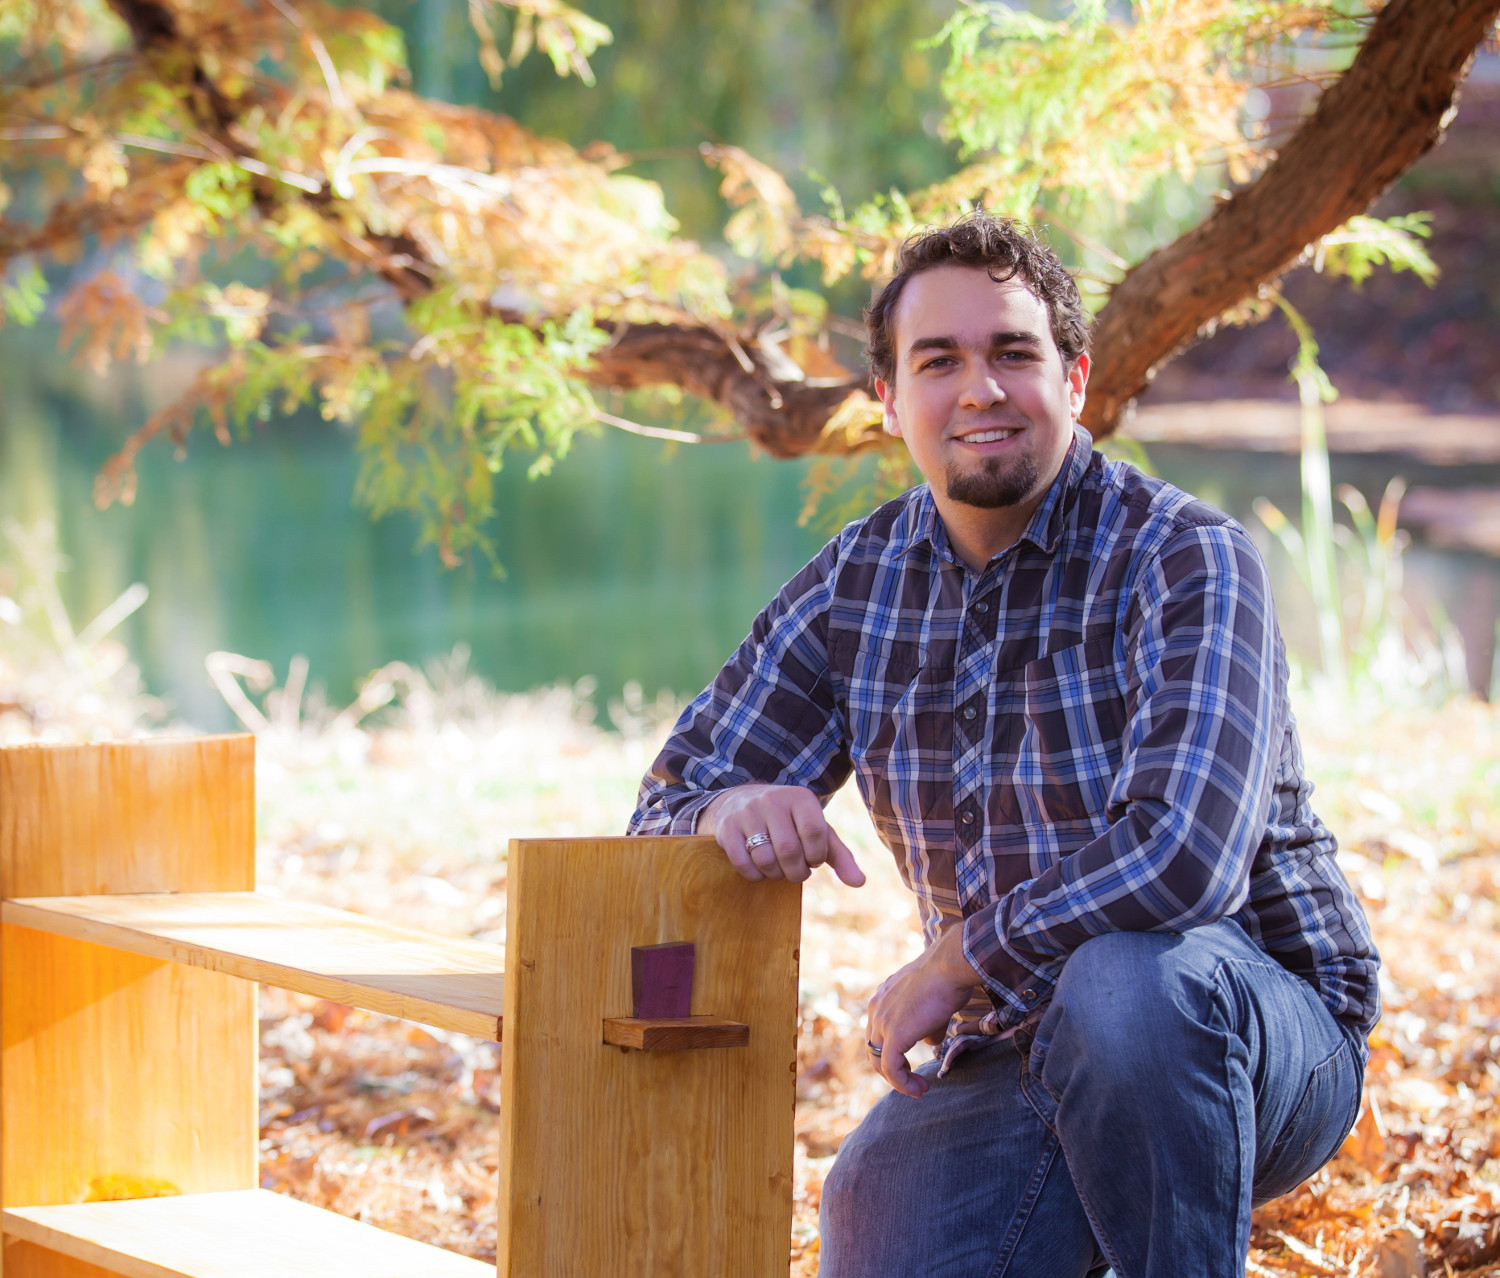 Dan Zehner enjoys woodworking and building custom furniture.